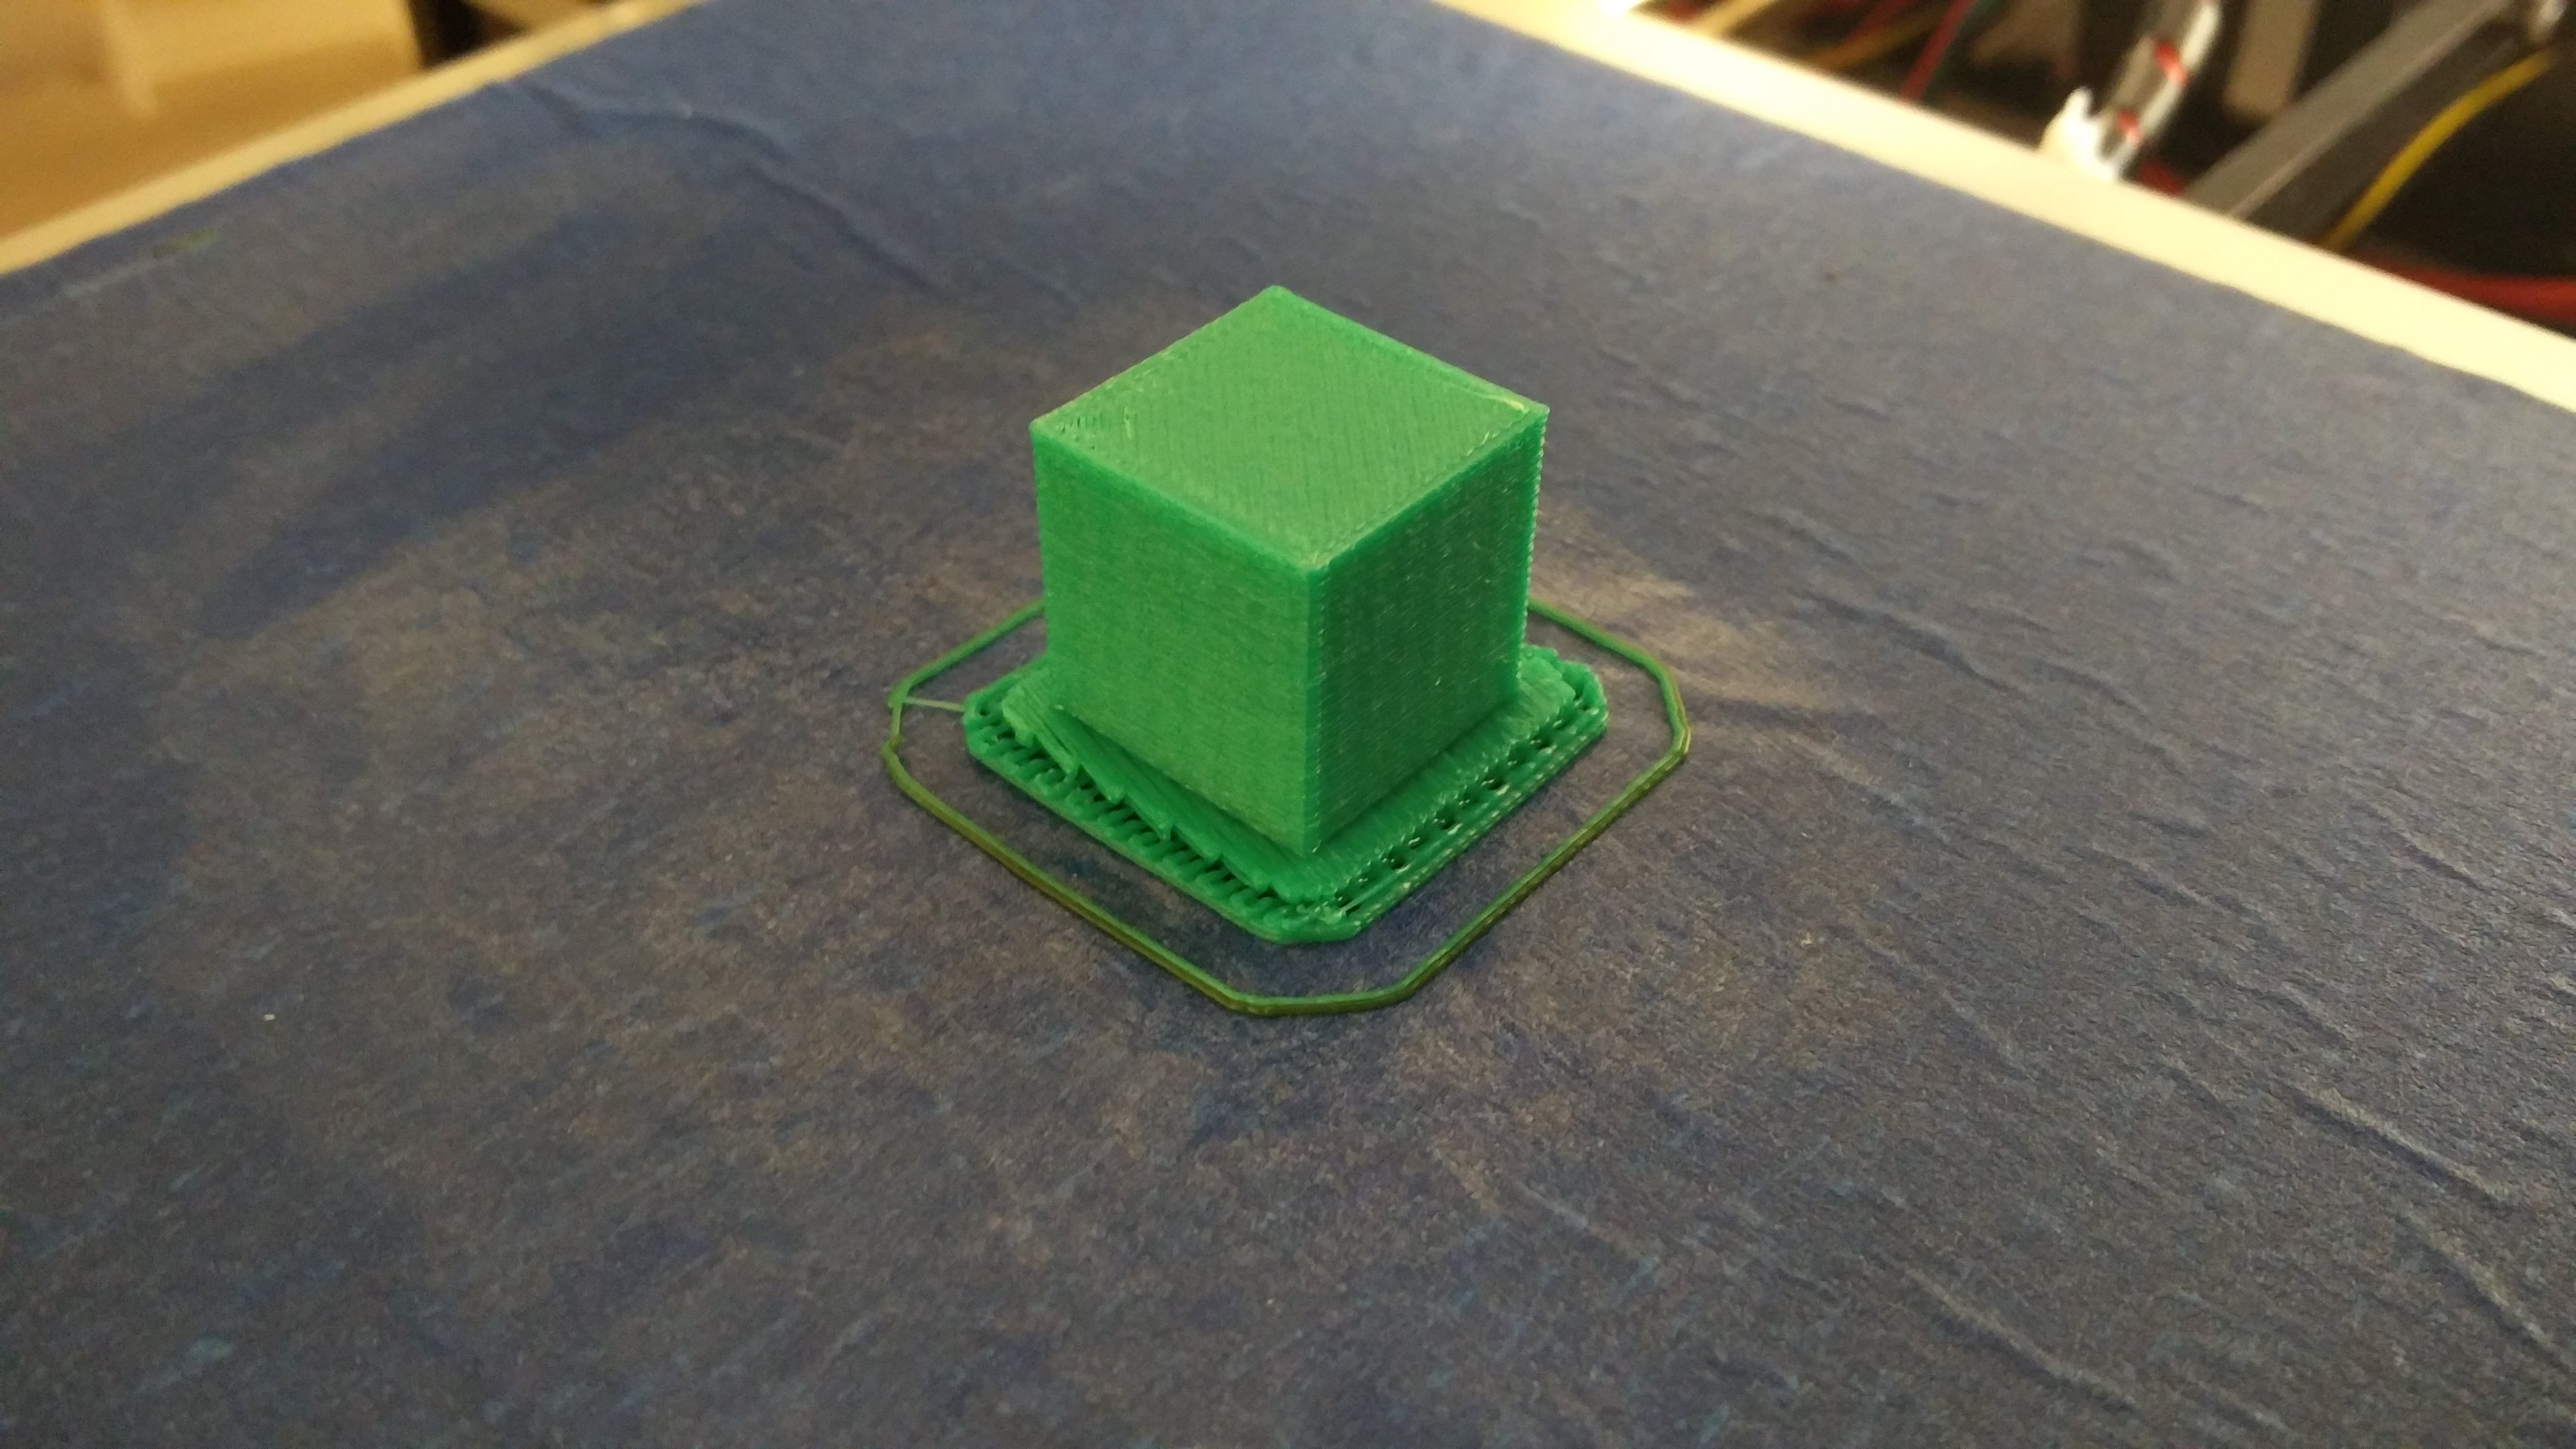 20mm Calibration Cube Using the Last of the Ugly Green Filament